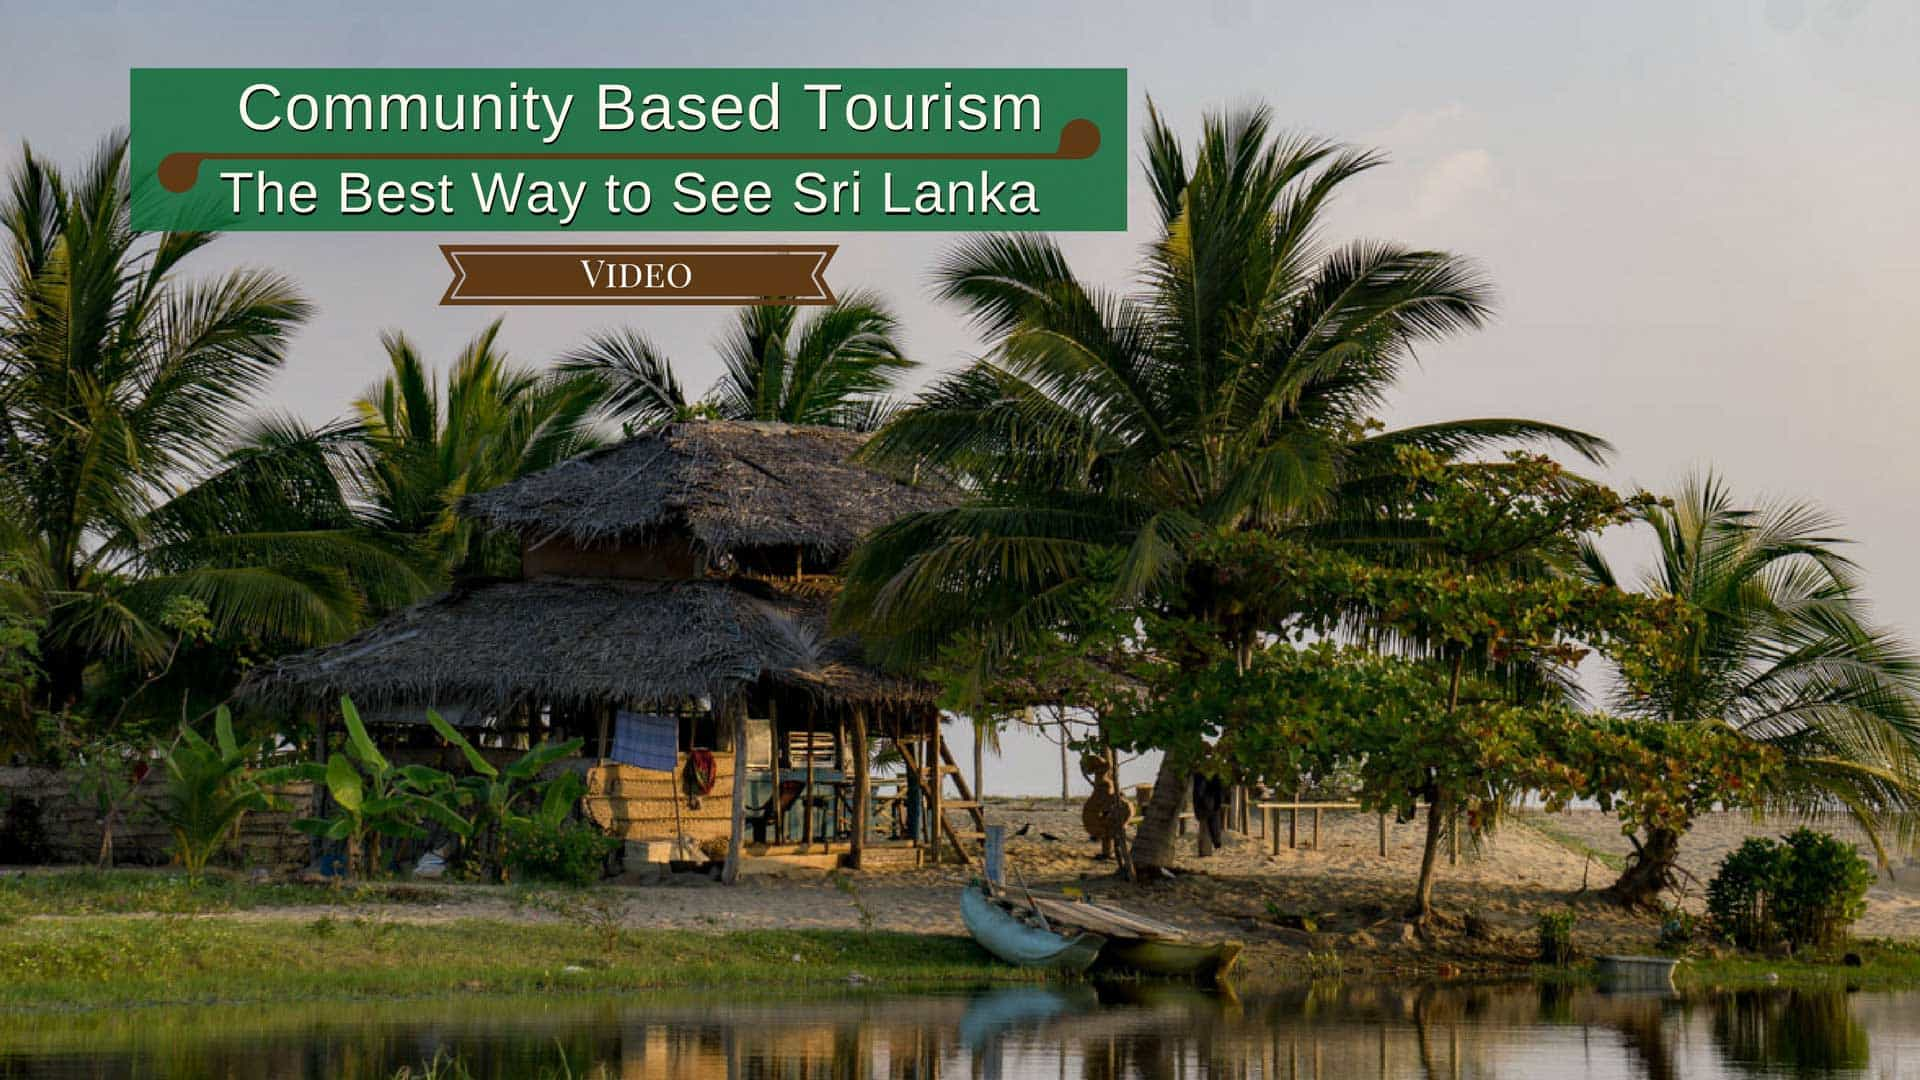 Tourism Experience: Community Based Tourism: The Best Way To See Sri Lanka